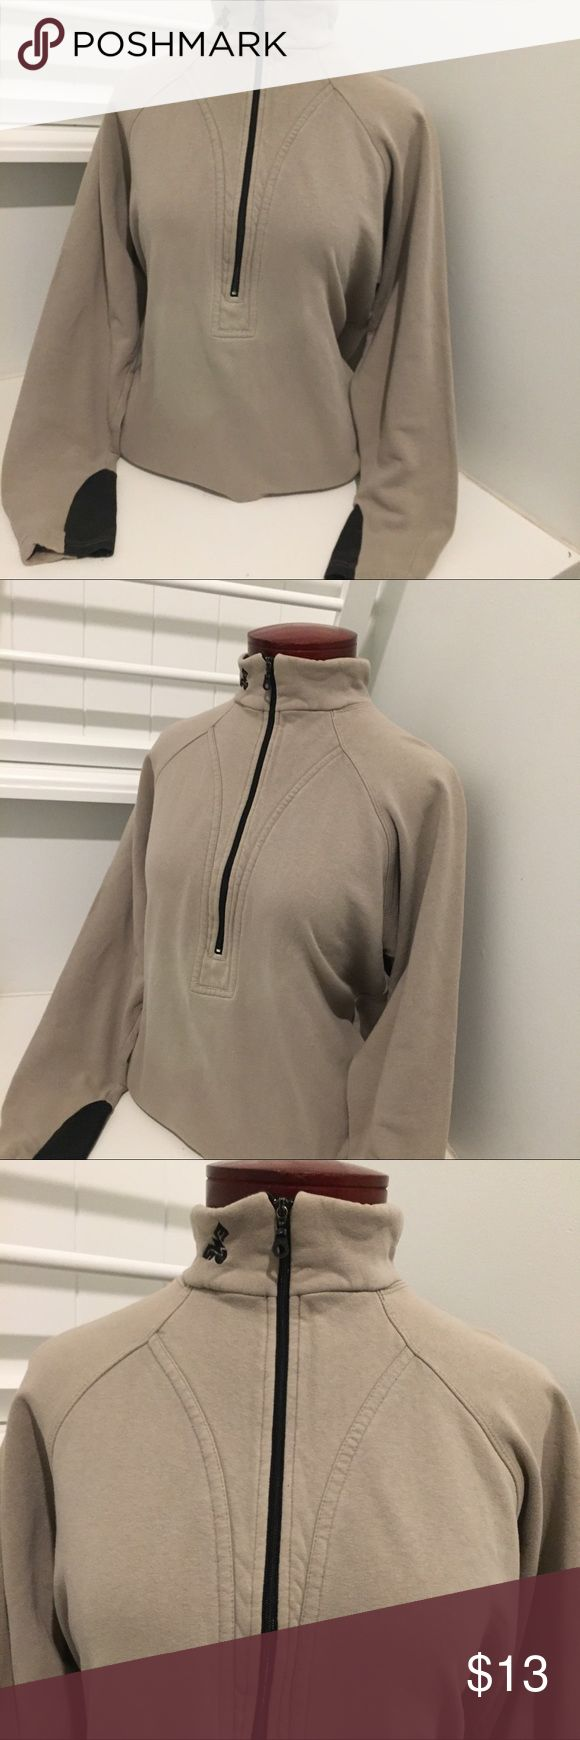 EASTERN MOUNTAIN SPORTS PULLOVER JACKET EMS SZ M Gently used eastern mountain sports Tops Sweatshirts & Hoodies